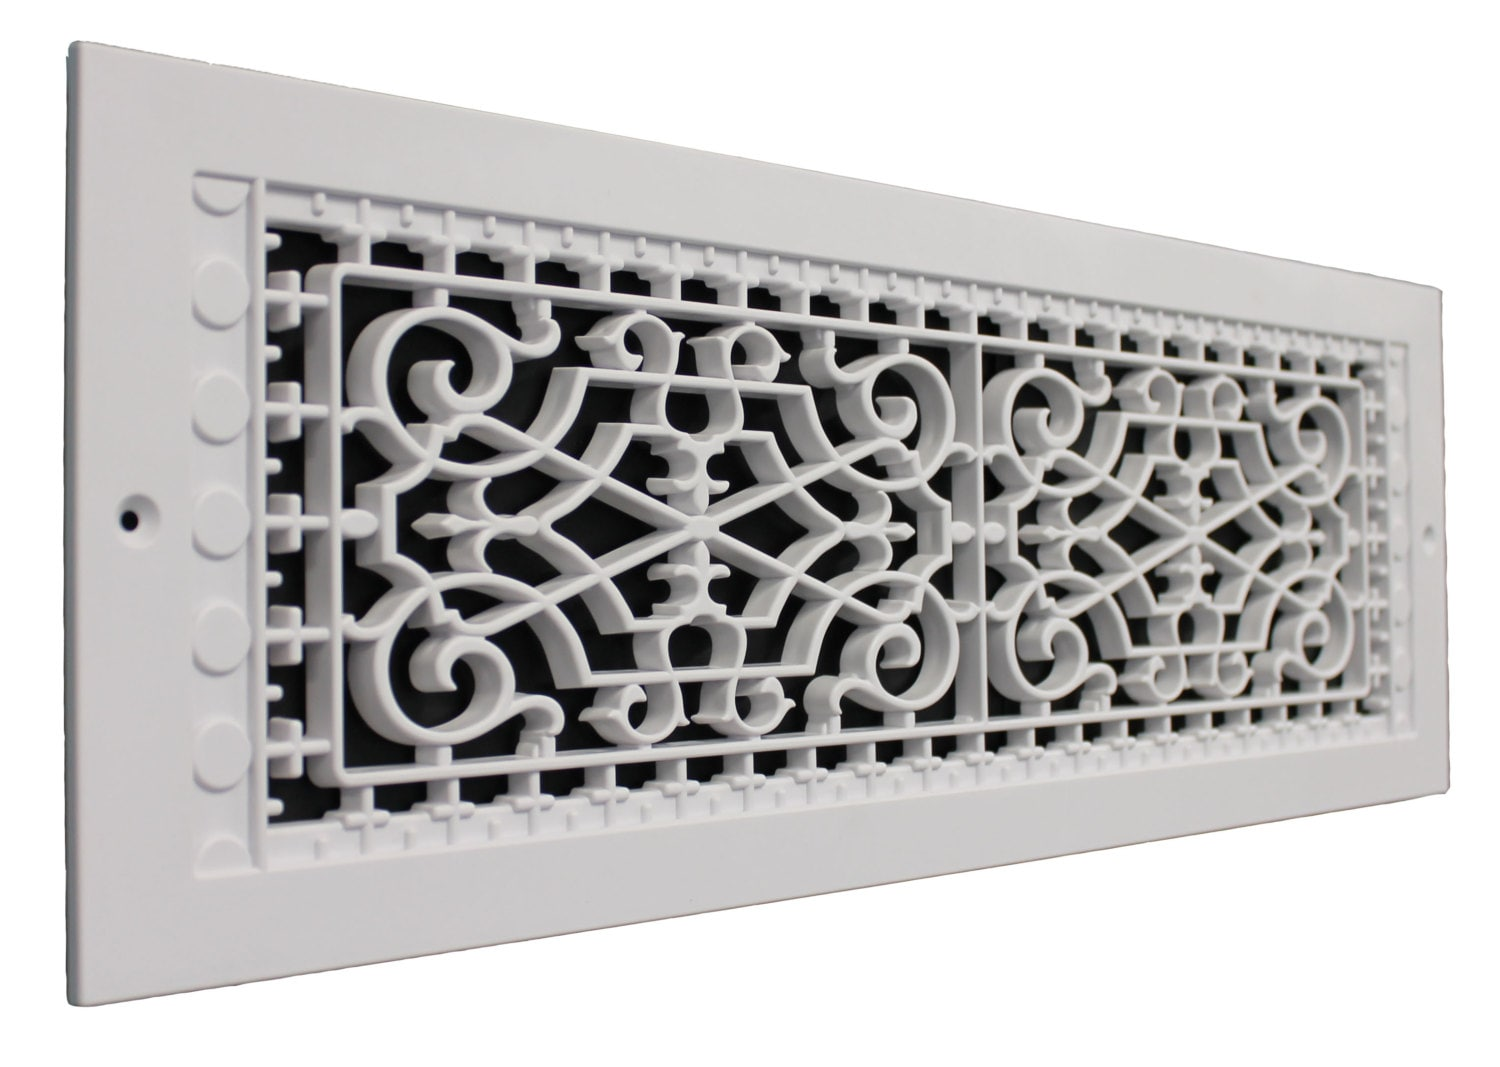 Victorian 6 X 22 Quot Wall Mount Grille Vent From Smivents On